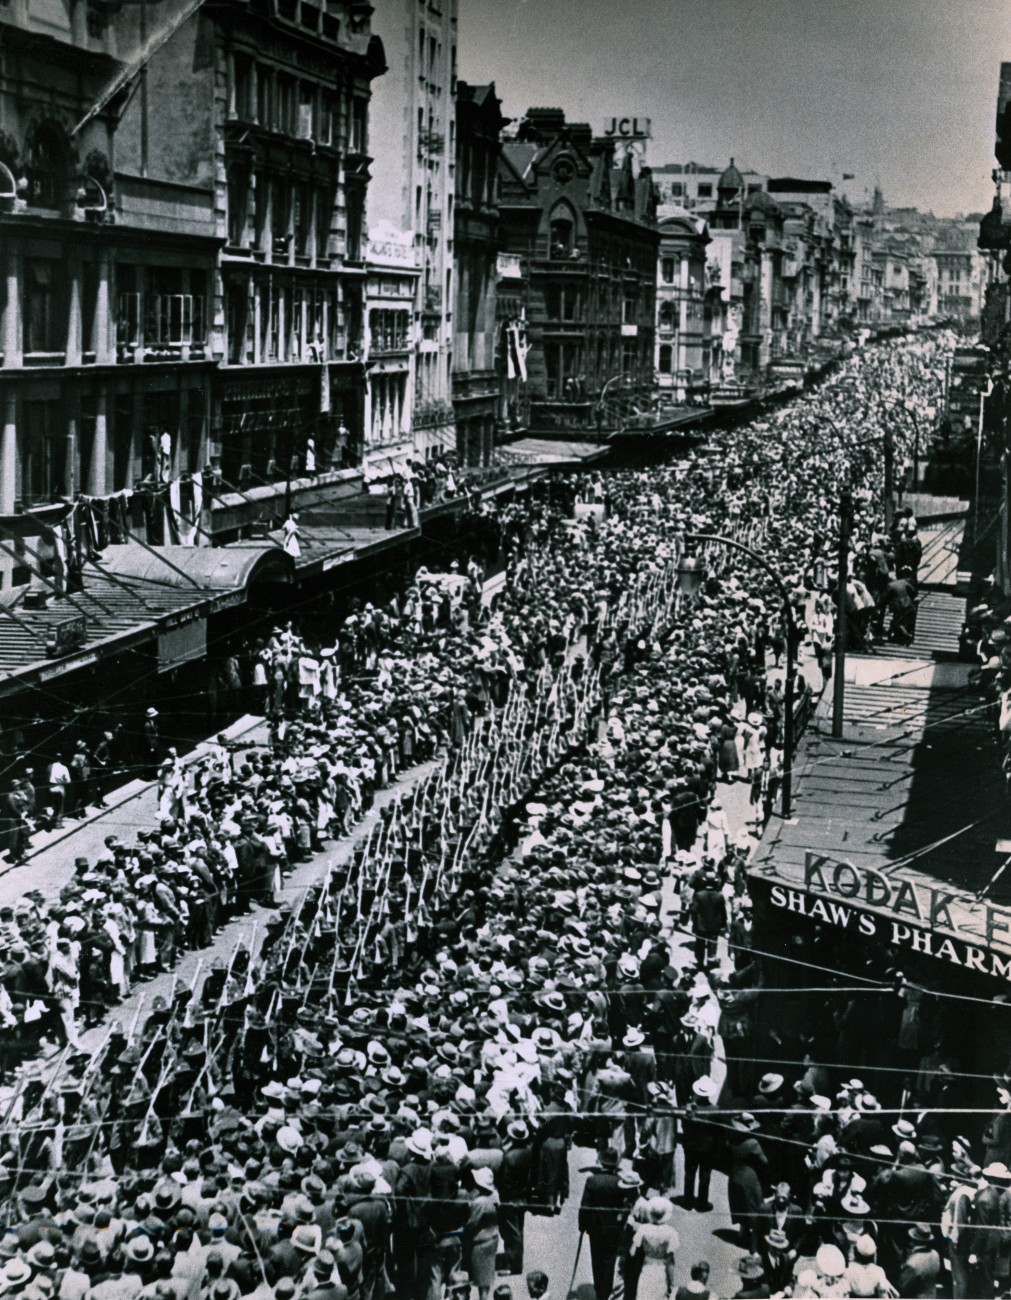 Crowds gathered in Queen Street on January 3, 1940 to farewell 2500 men of the First Echelon of the 2nd New Zealand Expeditionary Force, bound for Egypt. Five years later, on August 15-VJ day-the streets were filled with tears and dancing as New Zealanders celebrated the end of the bloodiest war in history-one which claimed upwards of 50 million lives.